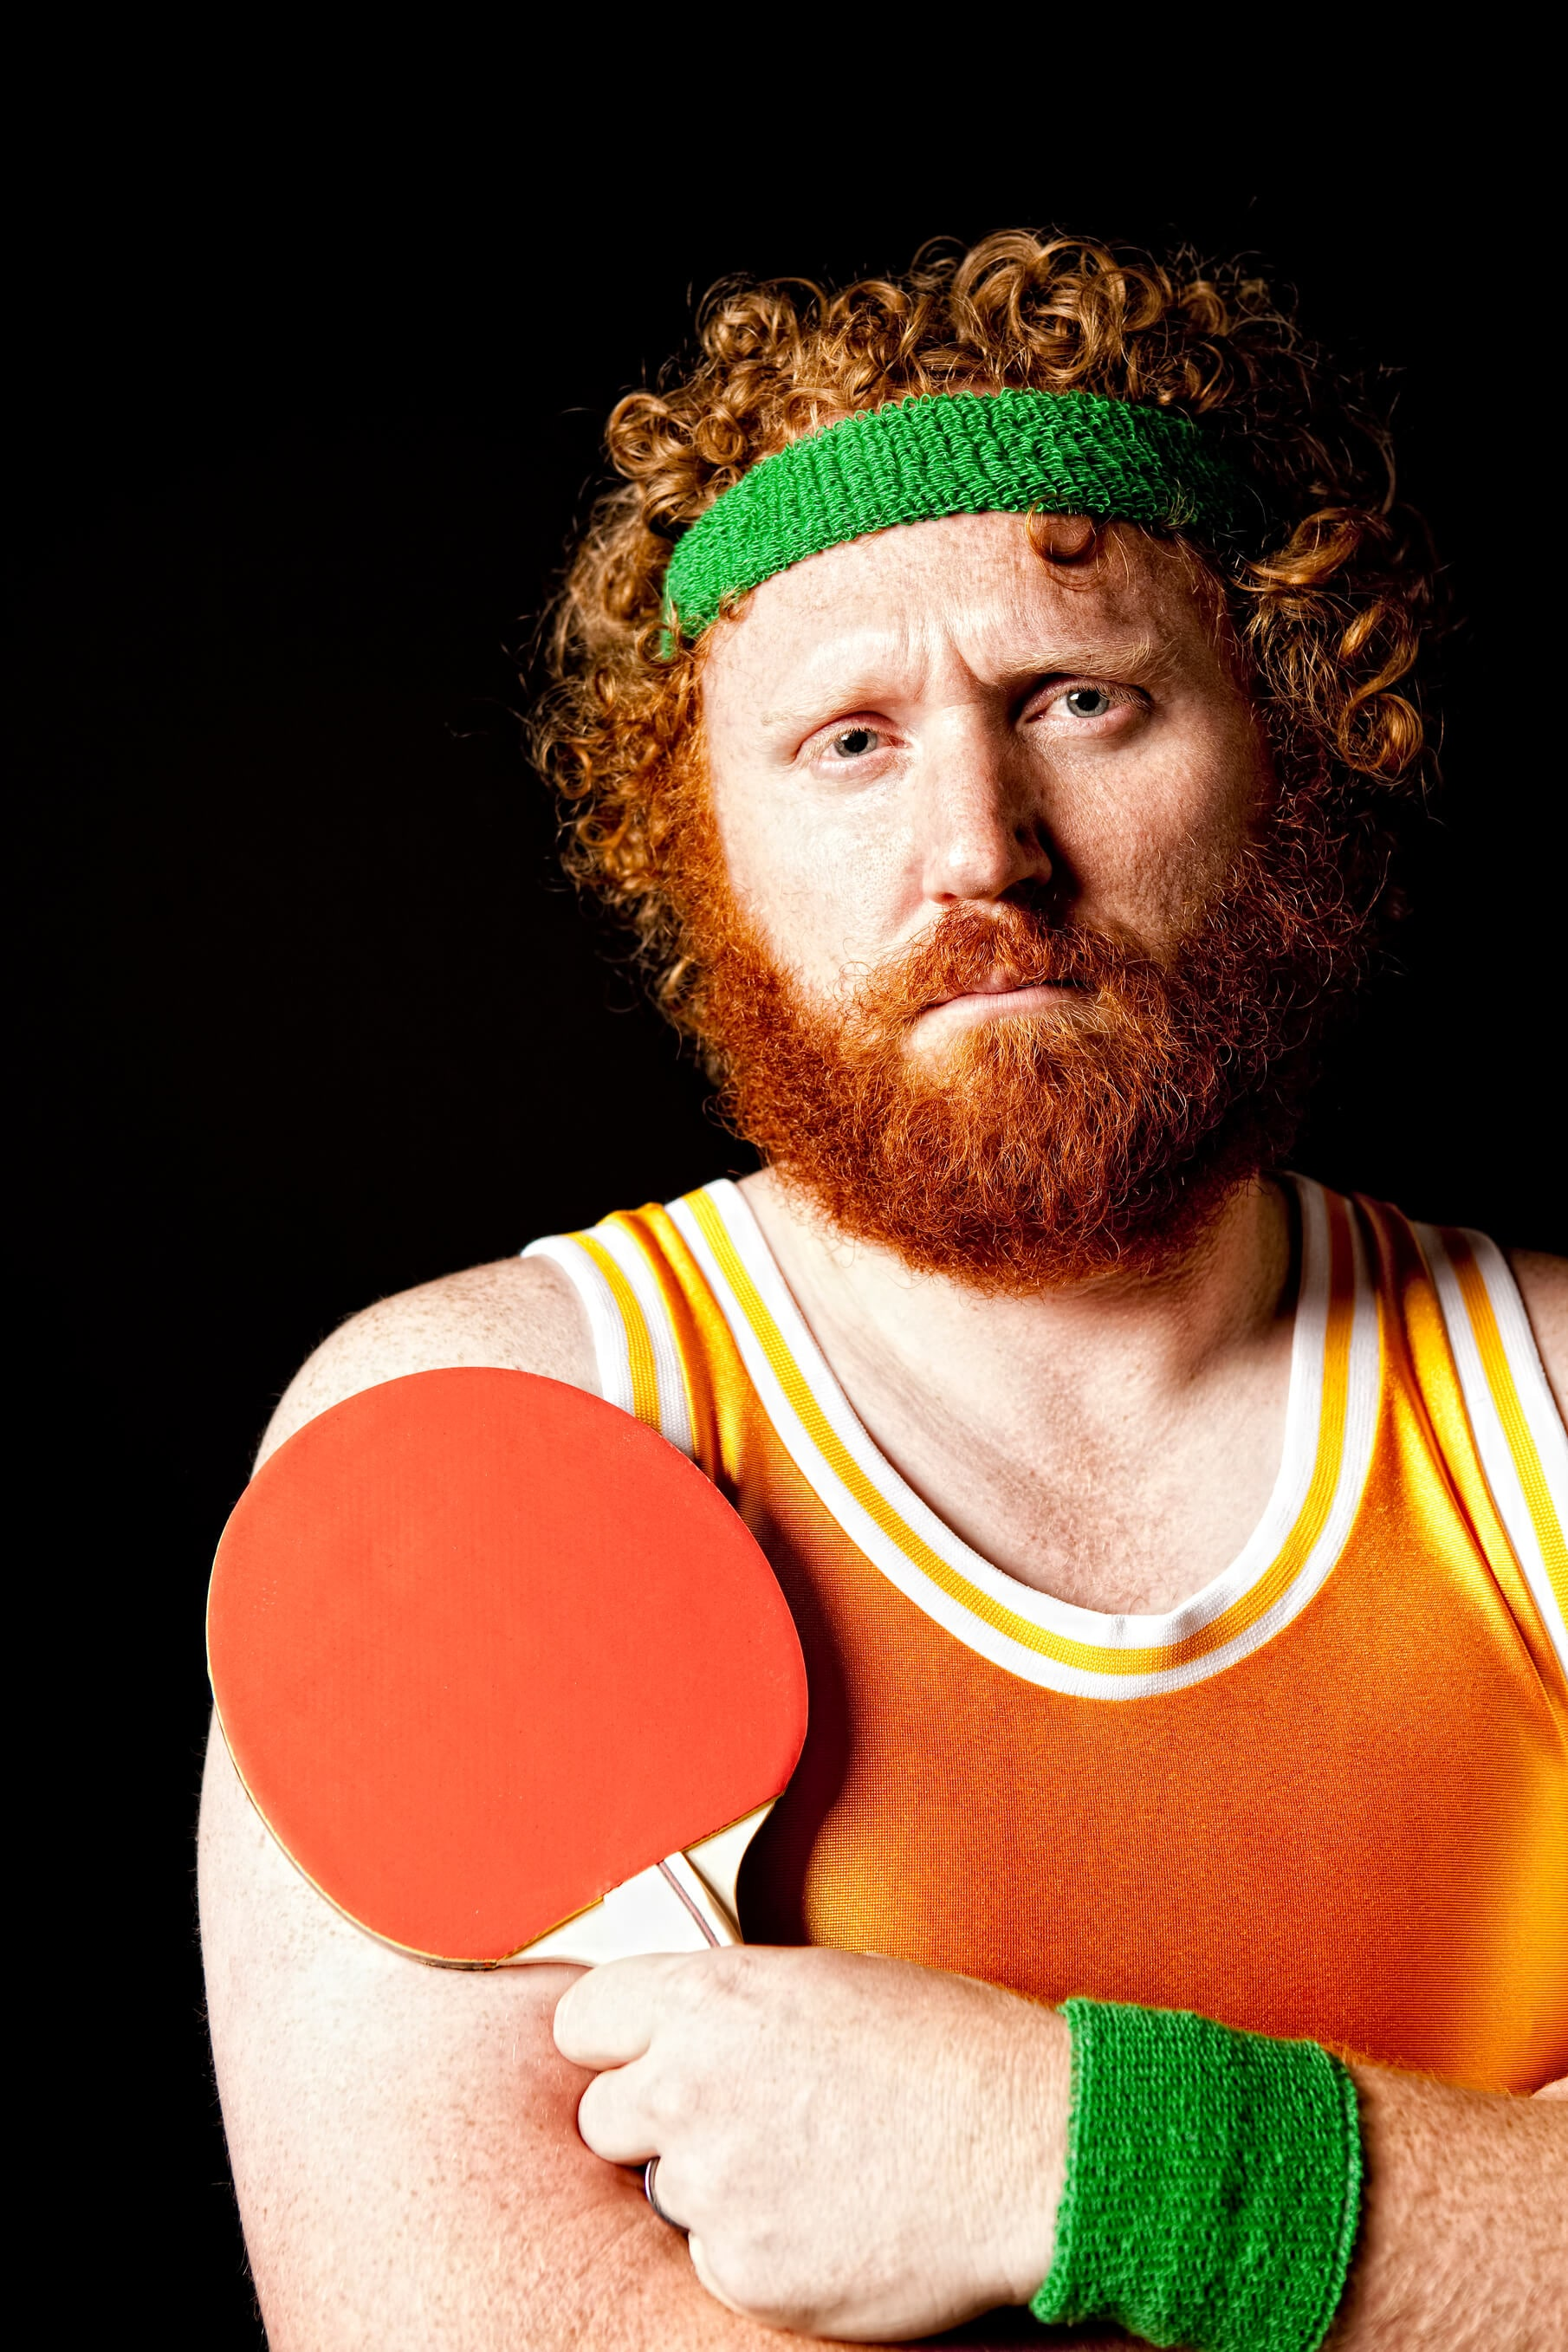 Ping pong player costume